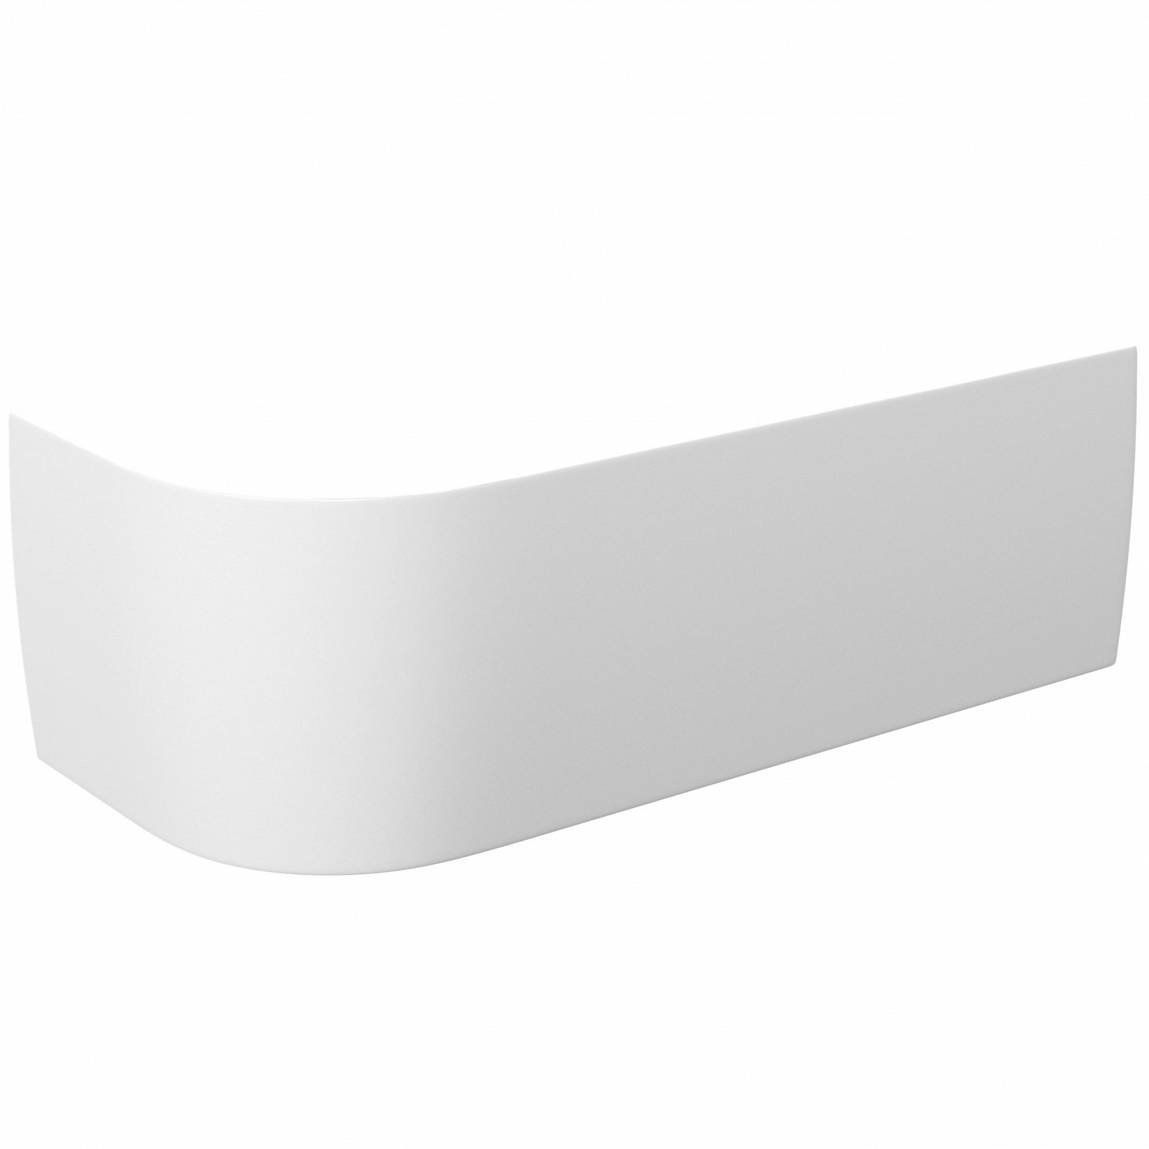 Image of Cayman D-Shaped Back to Wall Corner Bath Panel RH